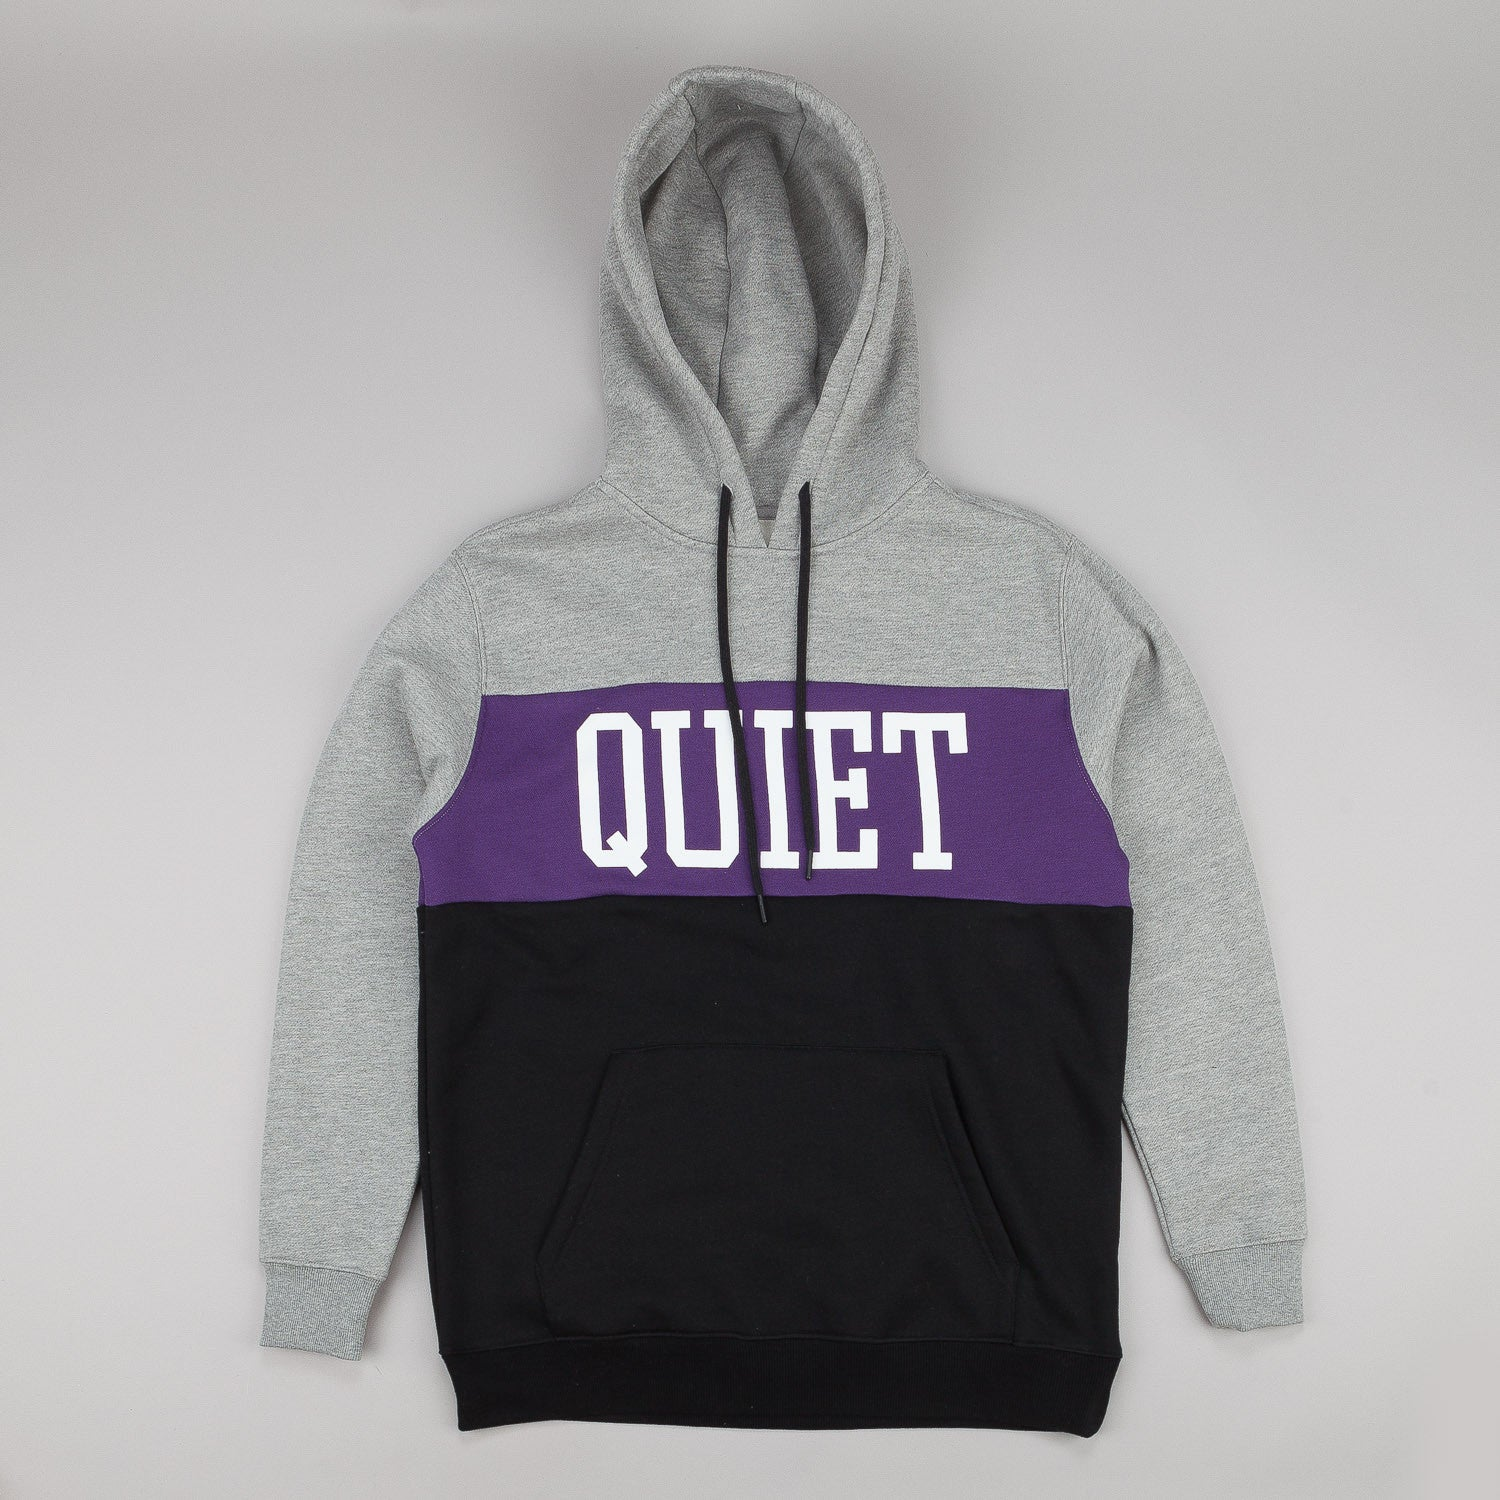 The Quiet Life Quiet Hooded Sweatshirt - Heather / Purple